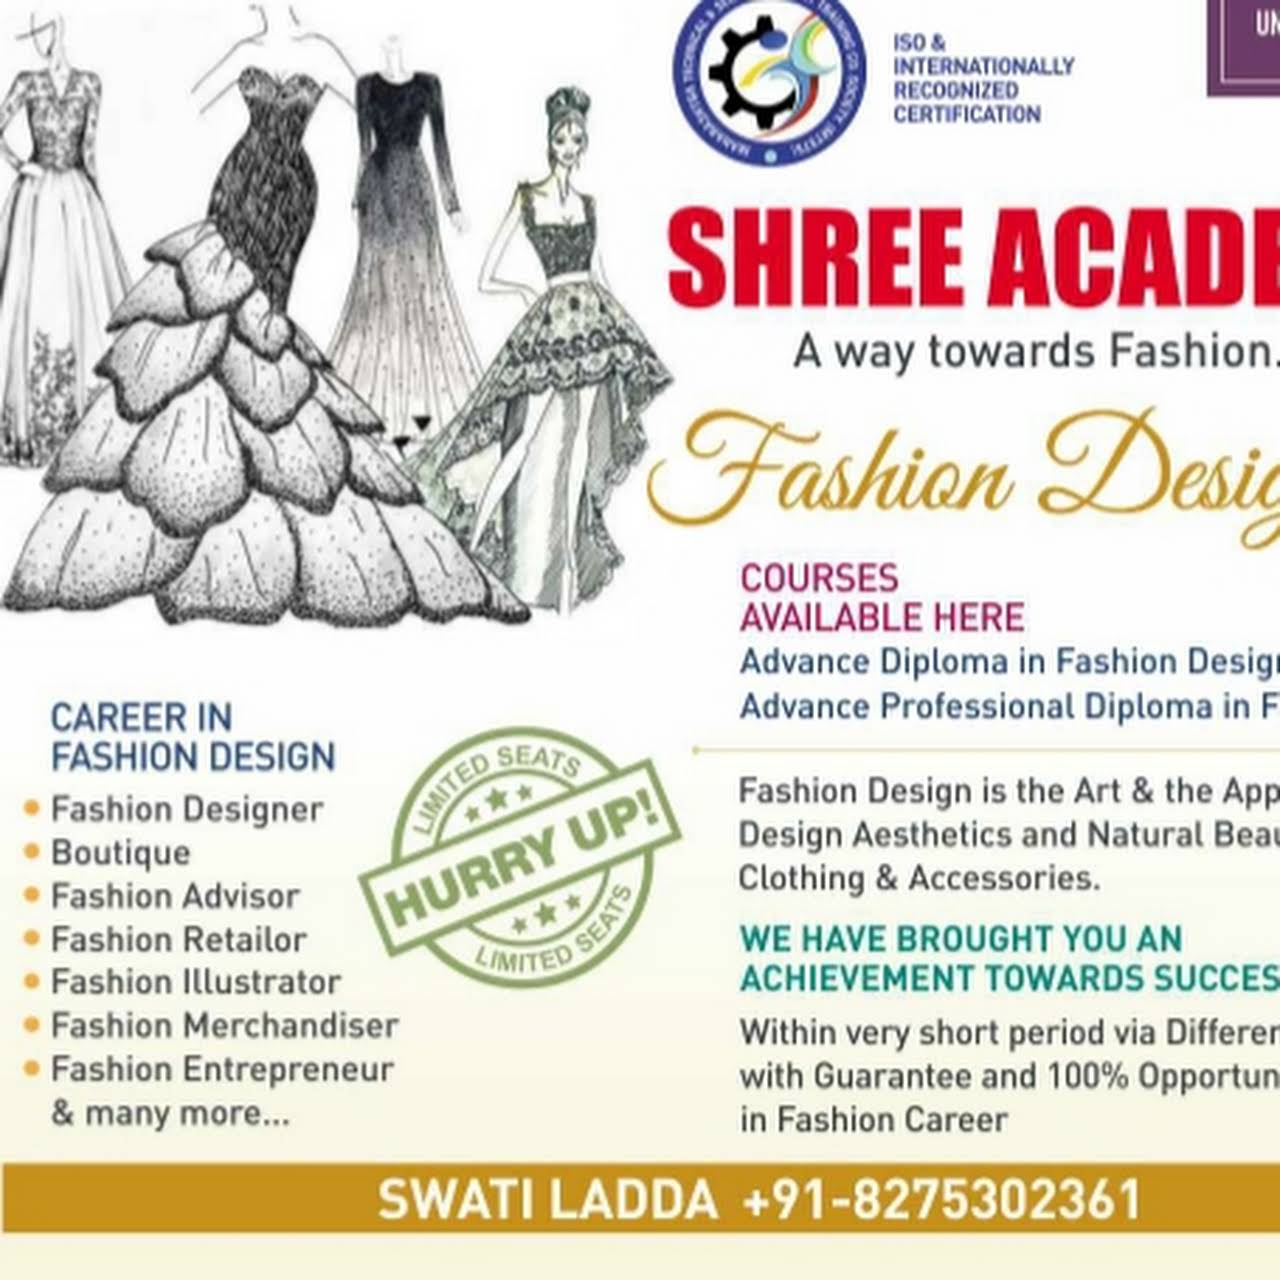 Shree Academy Modern Fashion Designing Institute Fashion Design School In Solapur